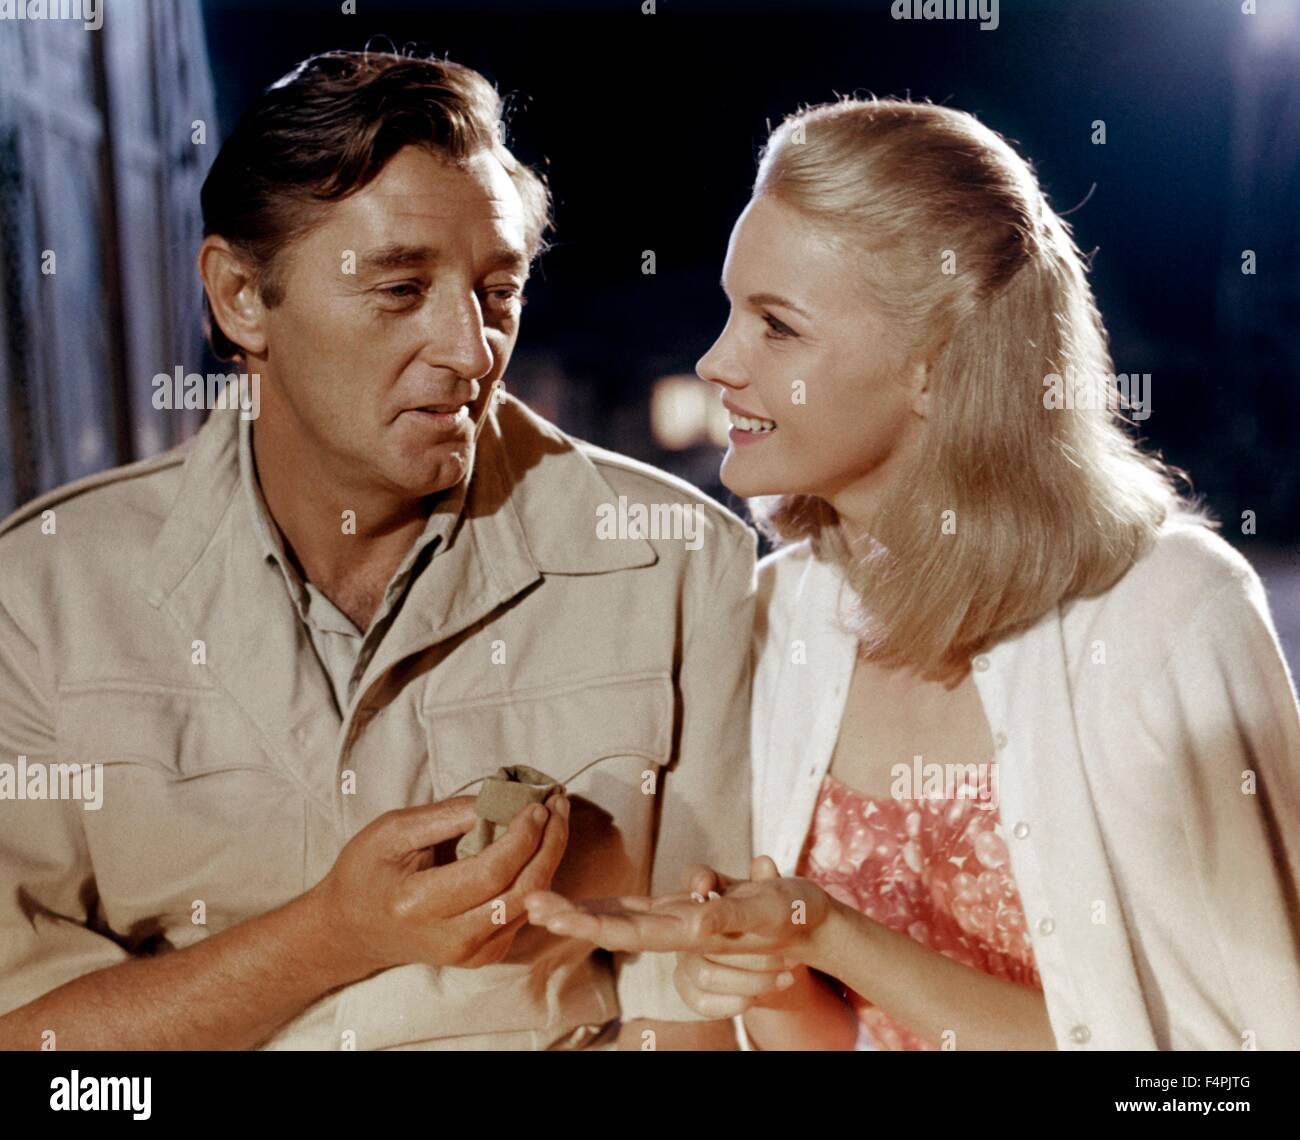 Robert Mitchum and Carroll Baker / Mister Moses / 1965 directed by Ronald Neame [United Artists] - Stock Image